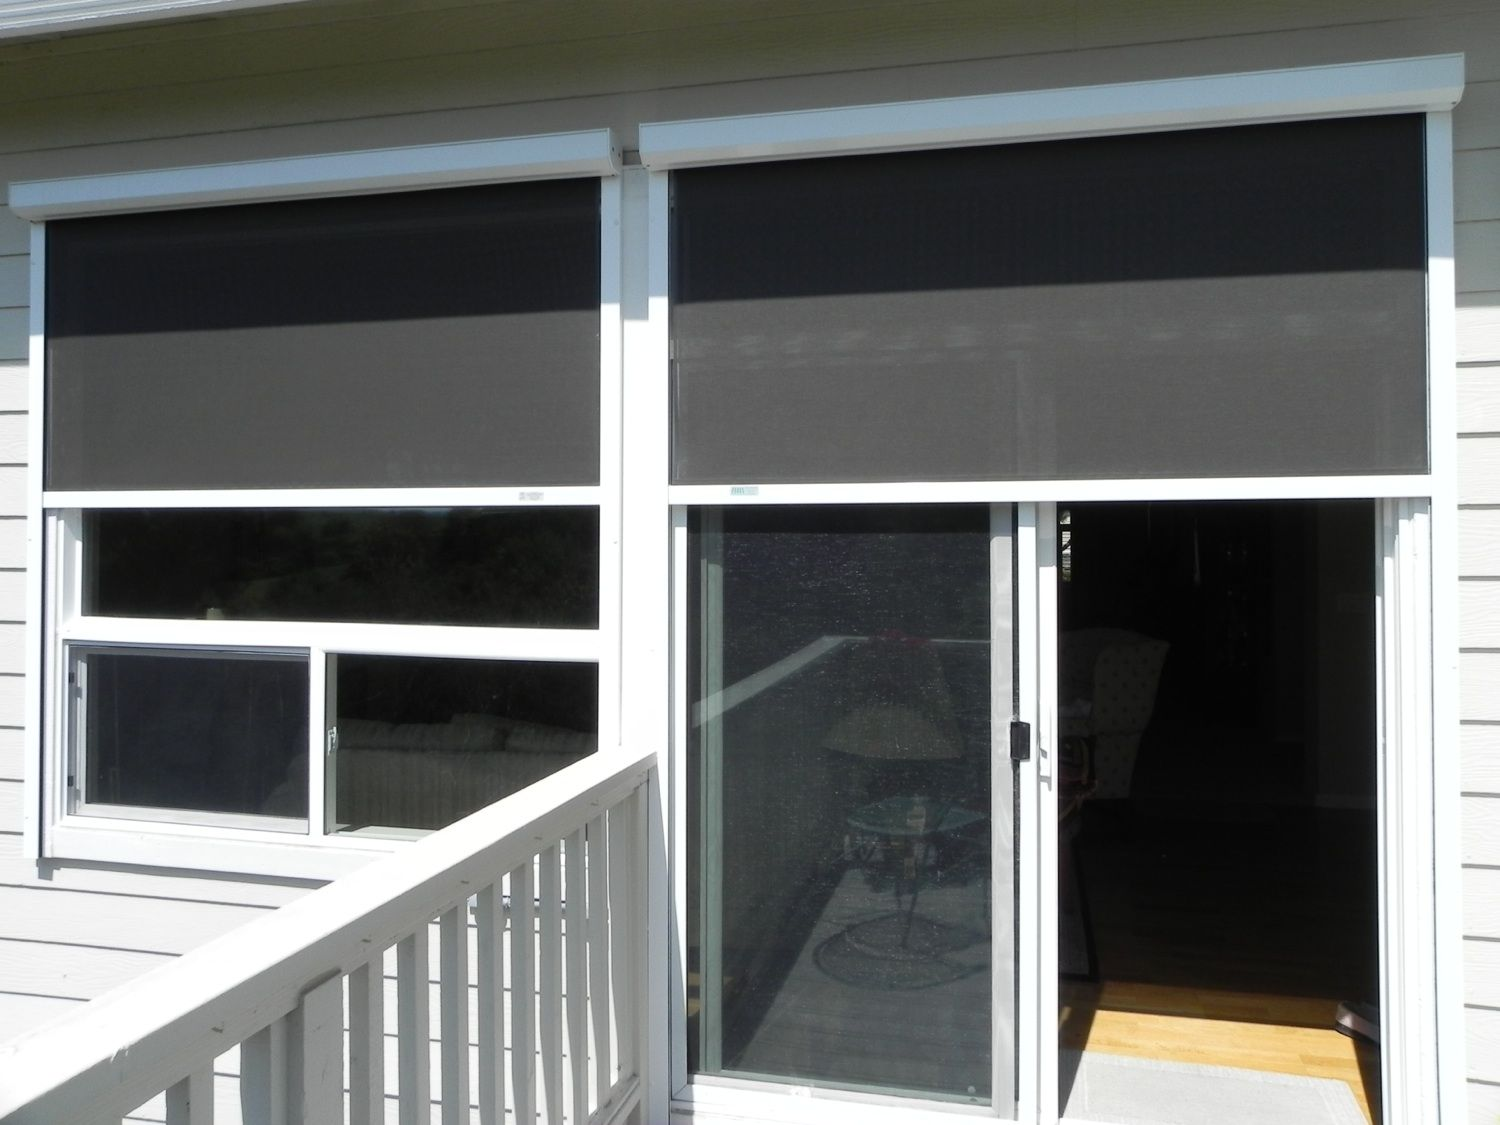 European Rolling Shutters Ers Shading Line Of Retractable Solar Screens Block The Sun S Damaging Uv Rays While Preserving Your View